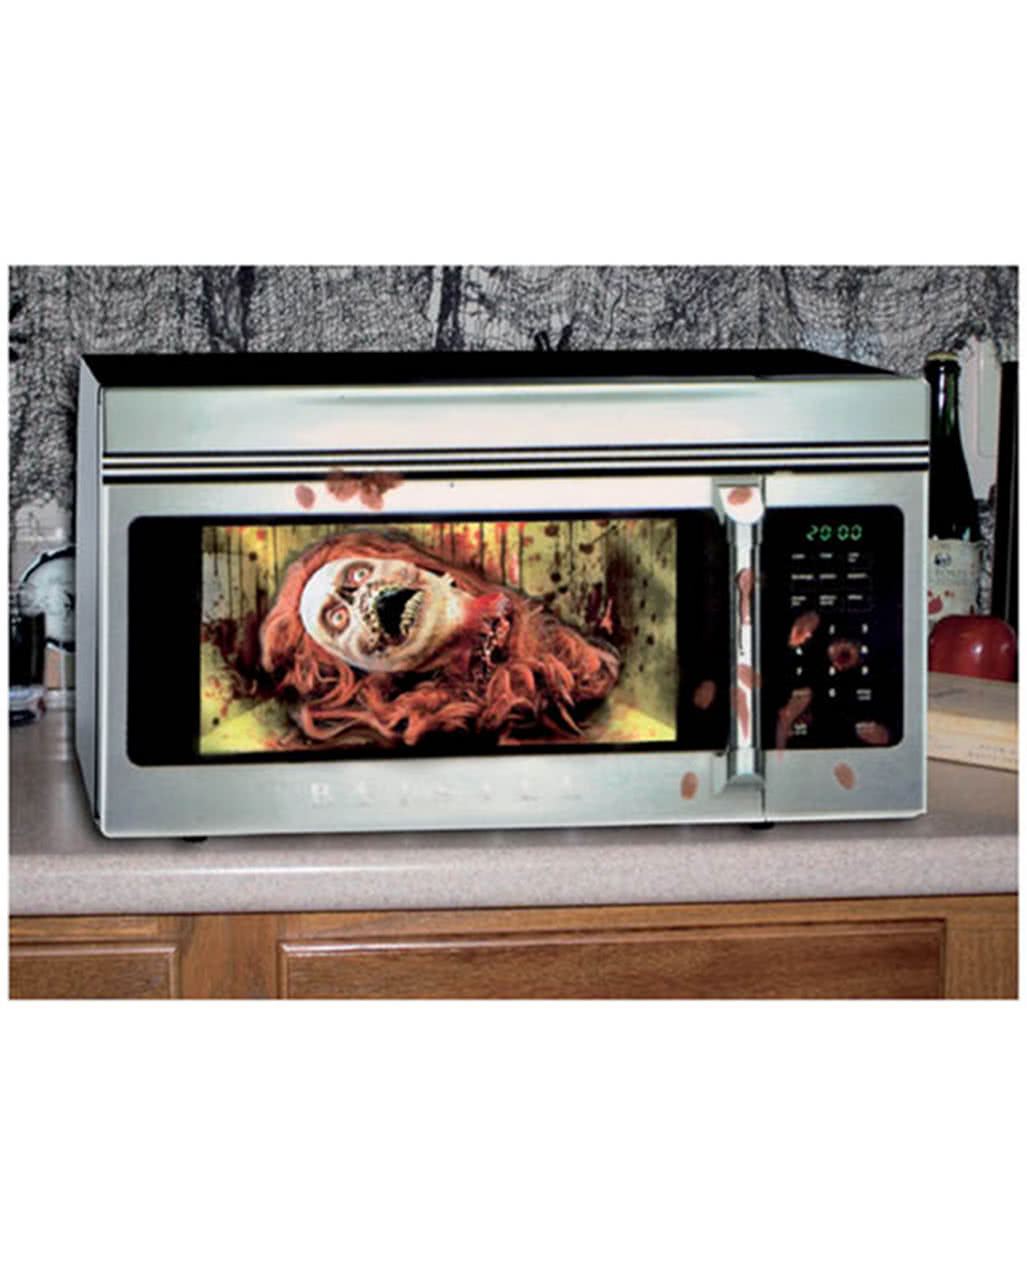 halloween microwave foil zombie woman as horror decoration. Black Bedroom Furniture Sets. Home Design Ideas